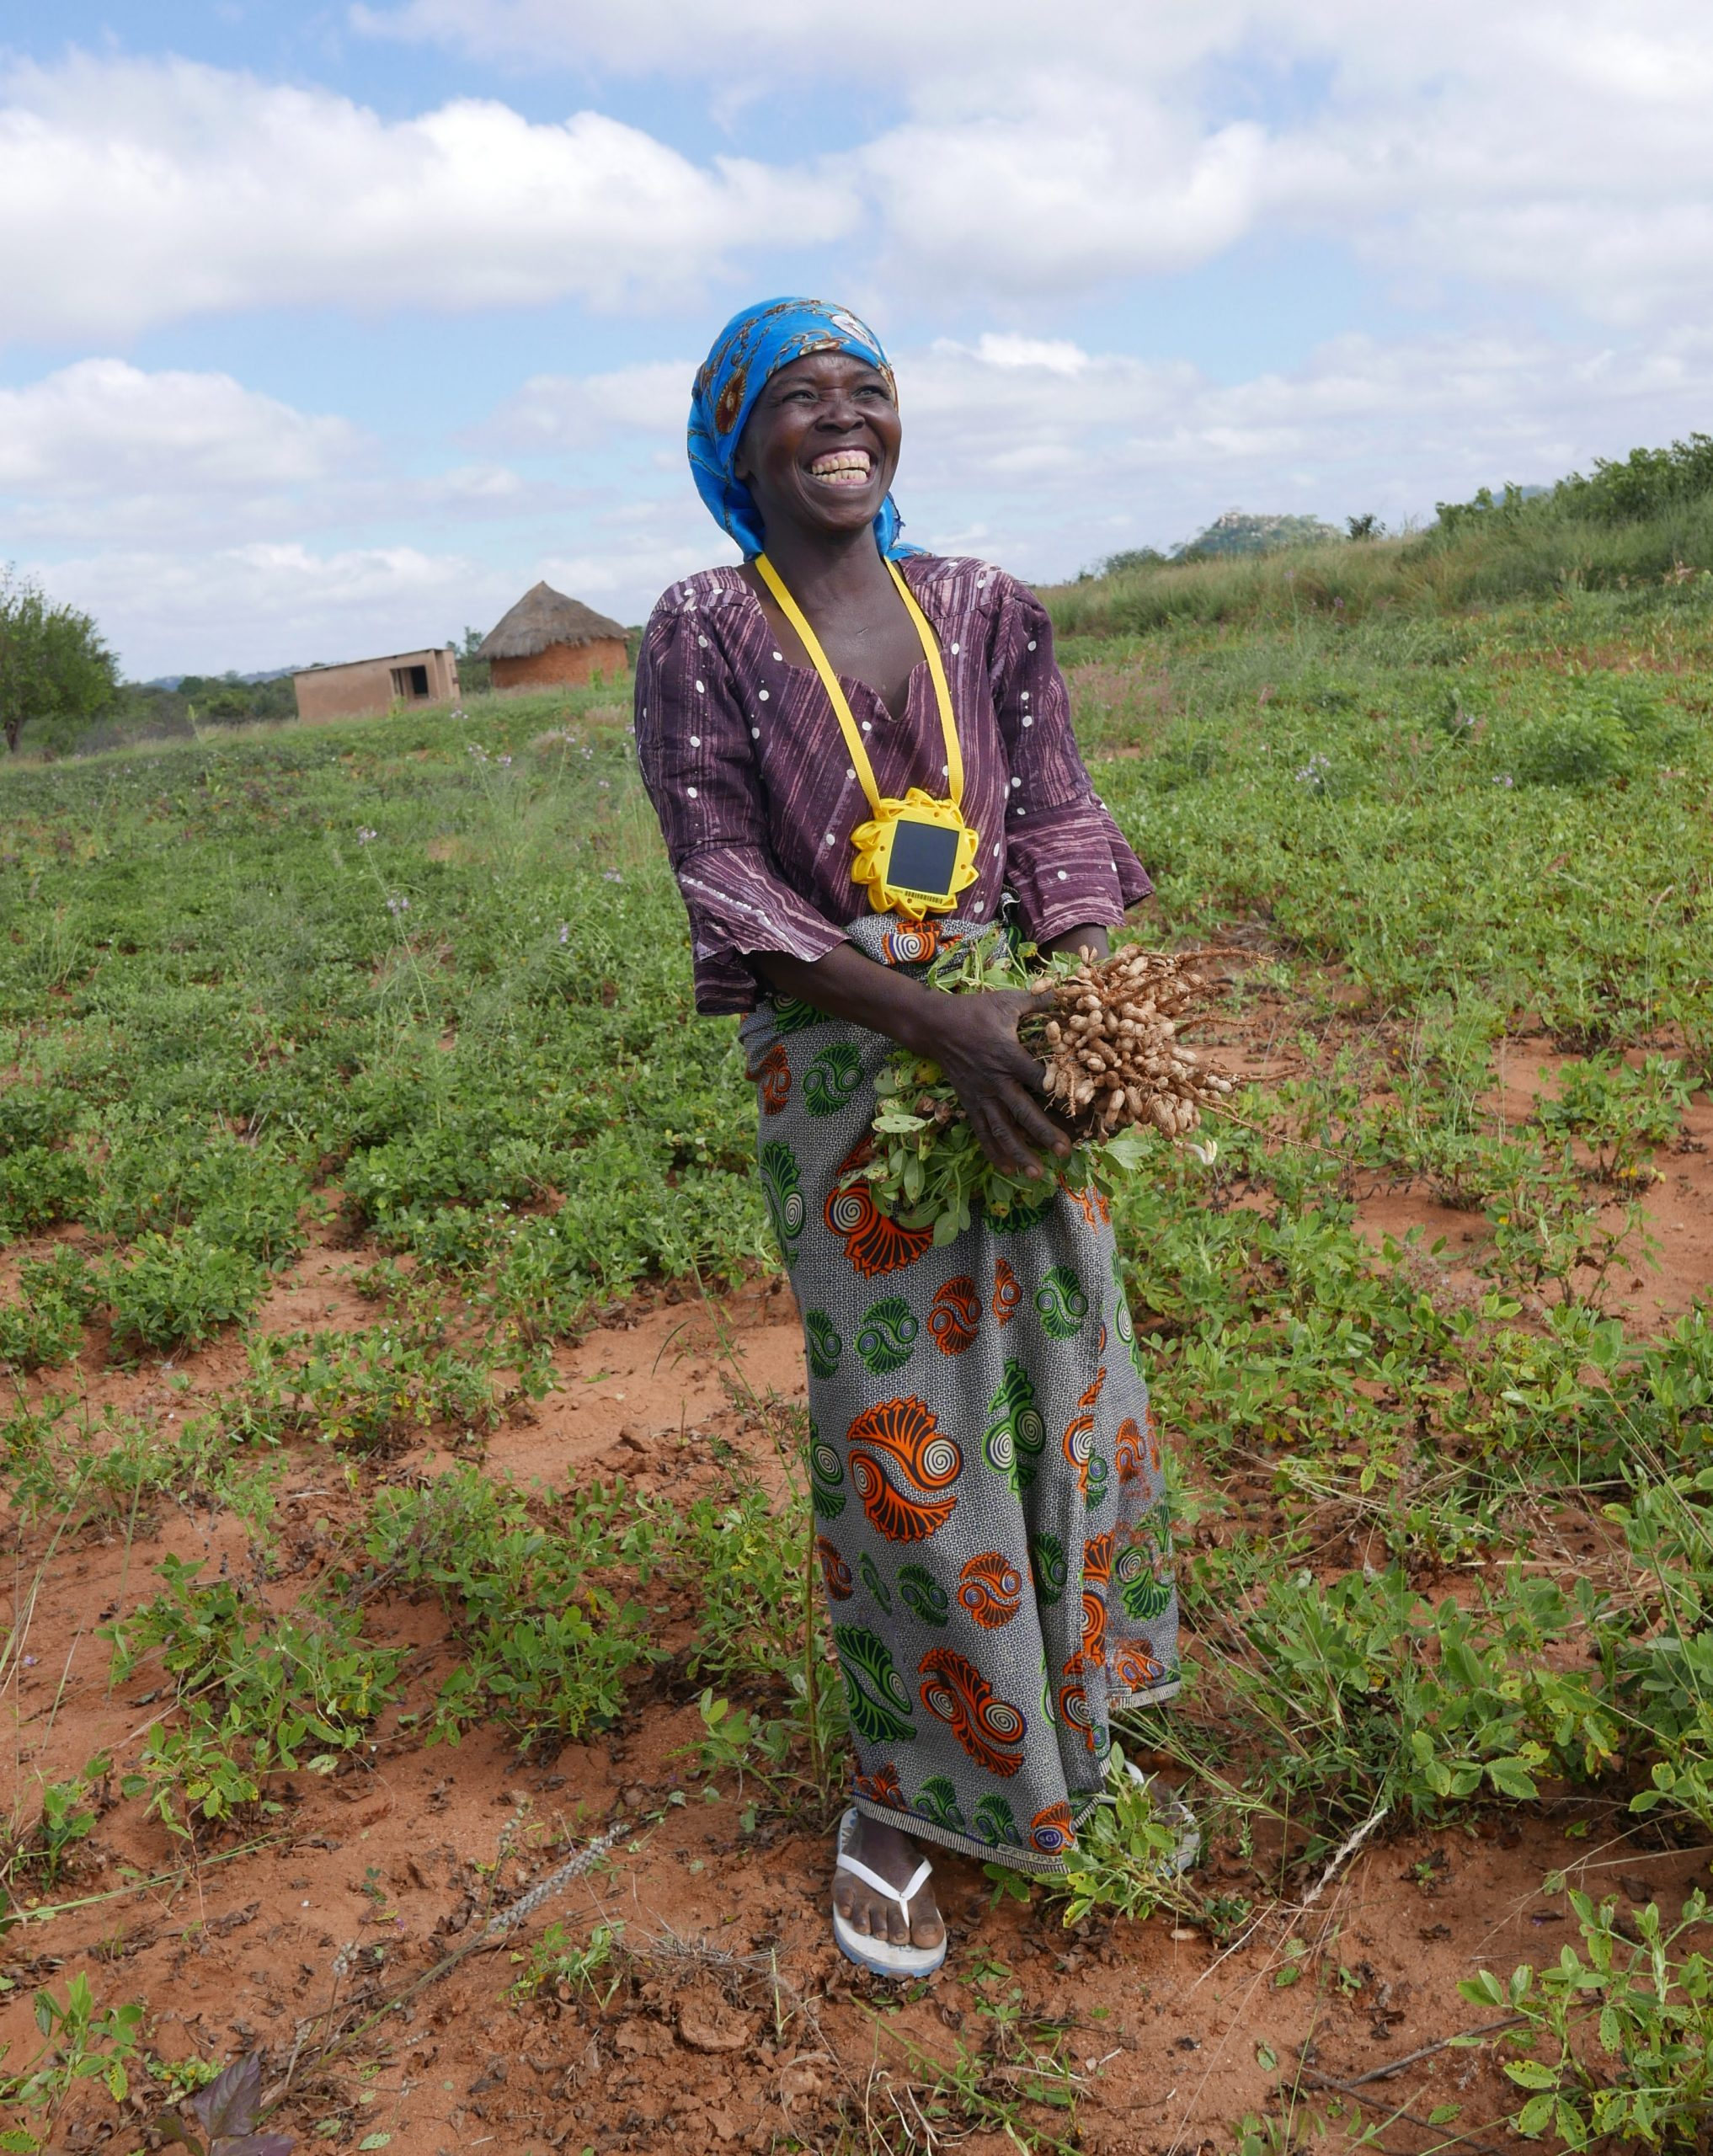 A women in Zimbabwe with a Little Sun solar lamp harvesting food